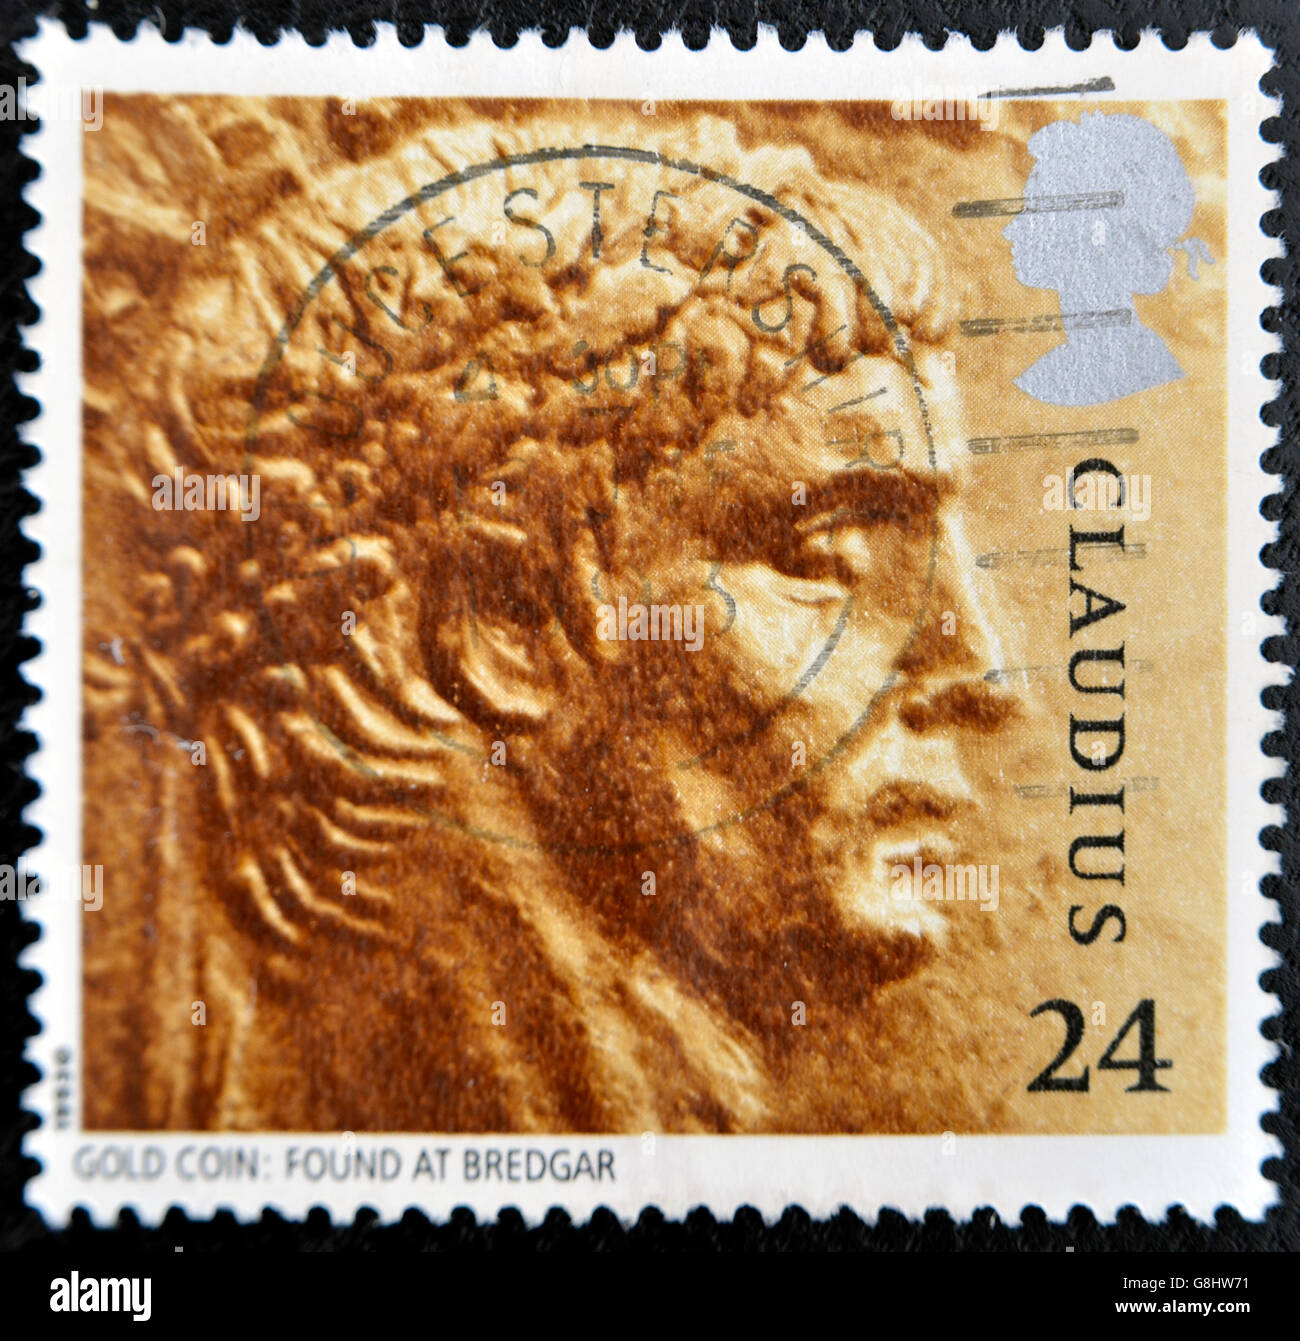 UNITED KINGDOM - CIRCA 1993: A stamp printed in Great Britain shows image of Claudius, gold coin: Found at Bredgar, - Stock Image